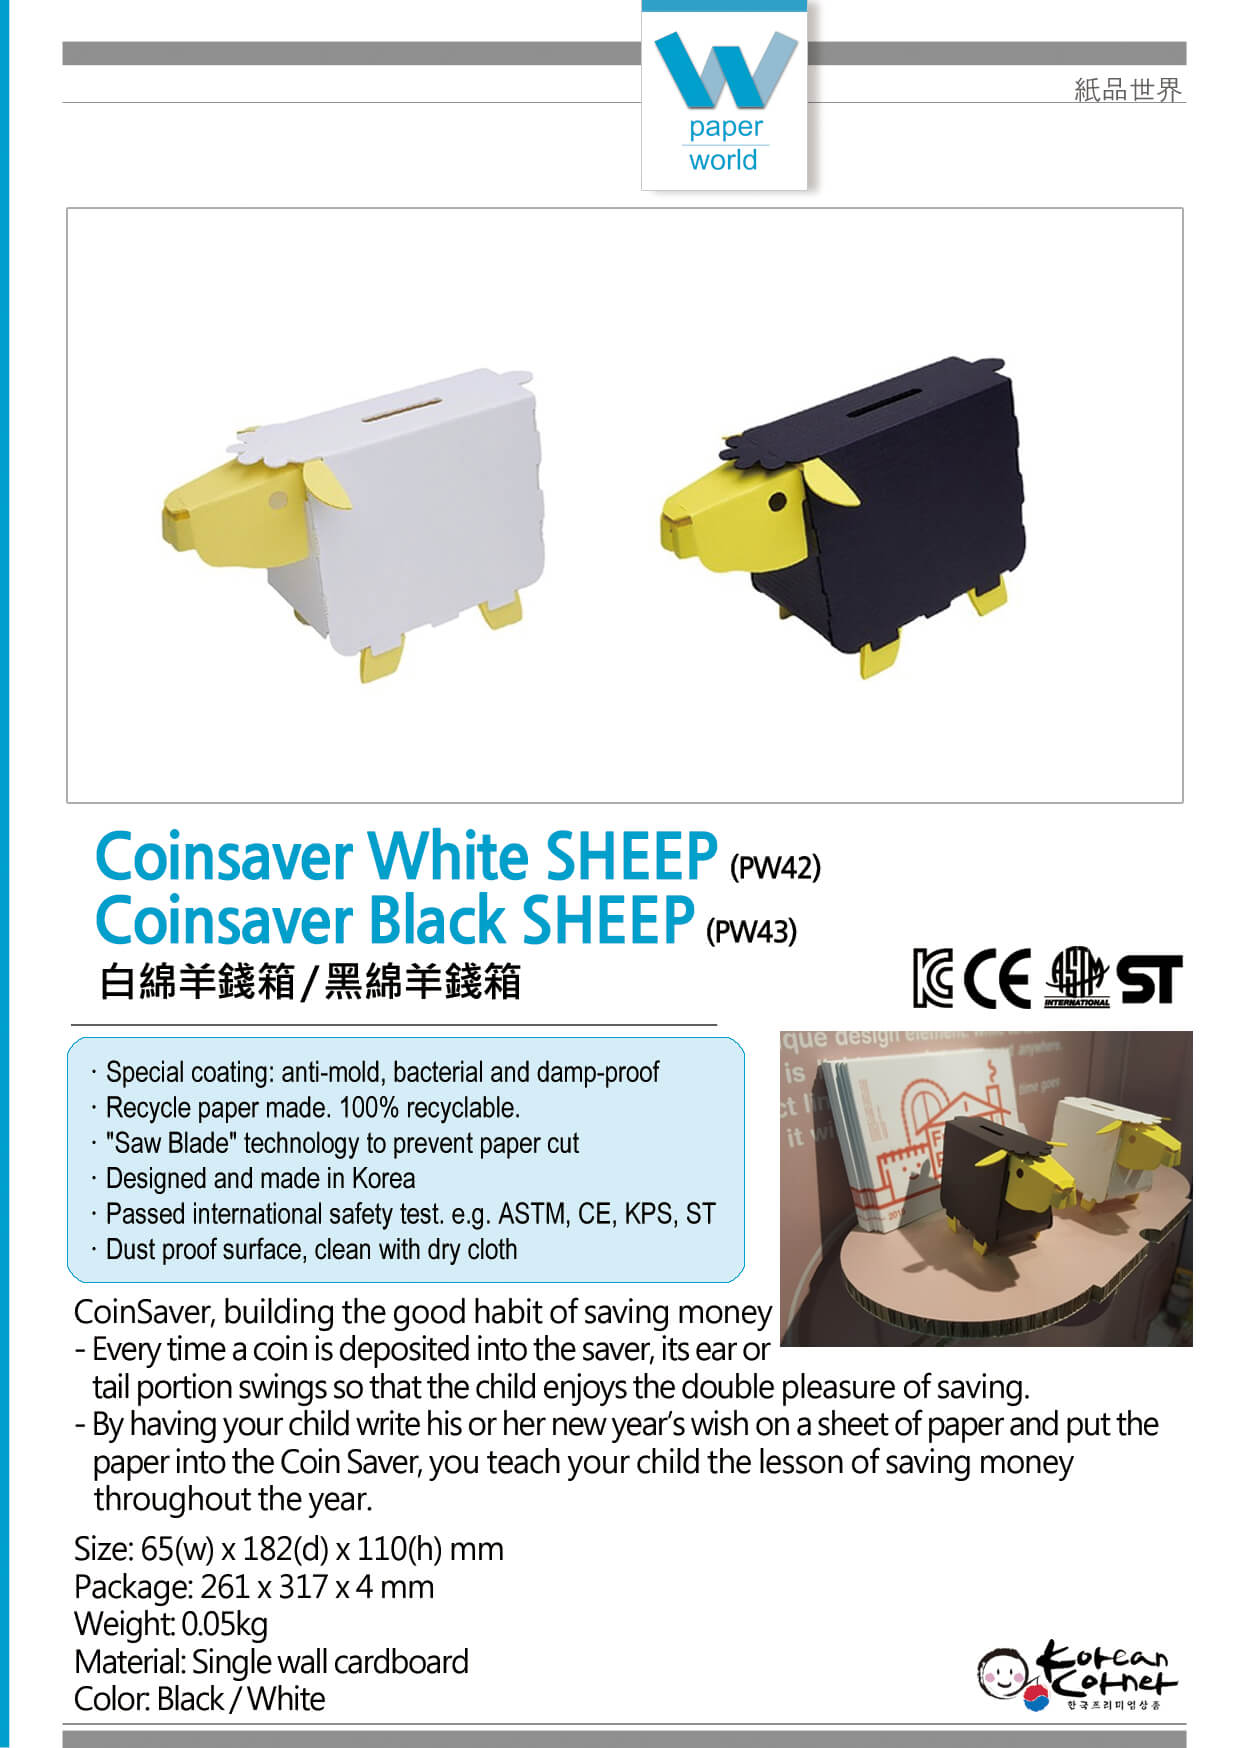 Coinsaver SHEEP